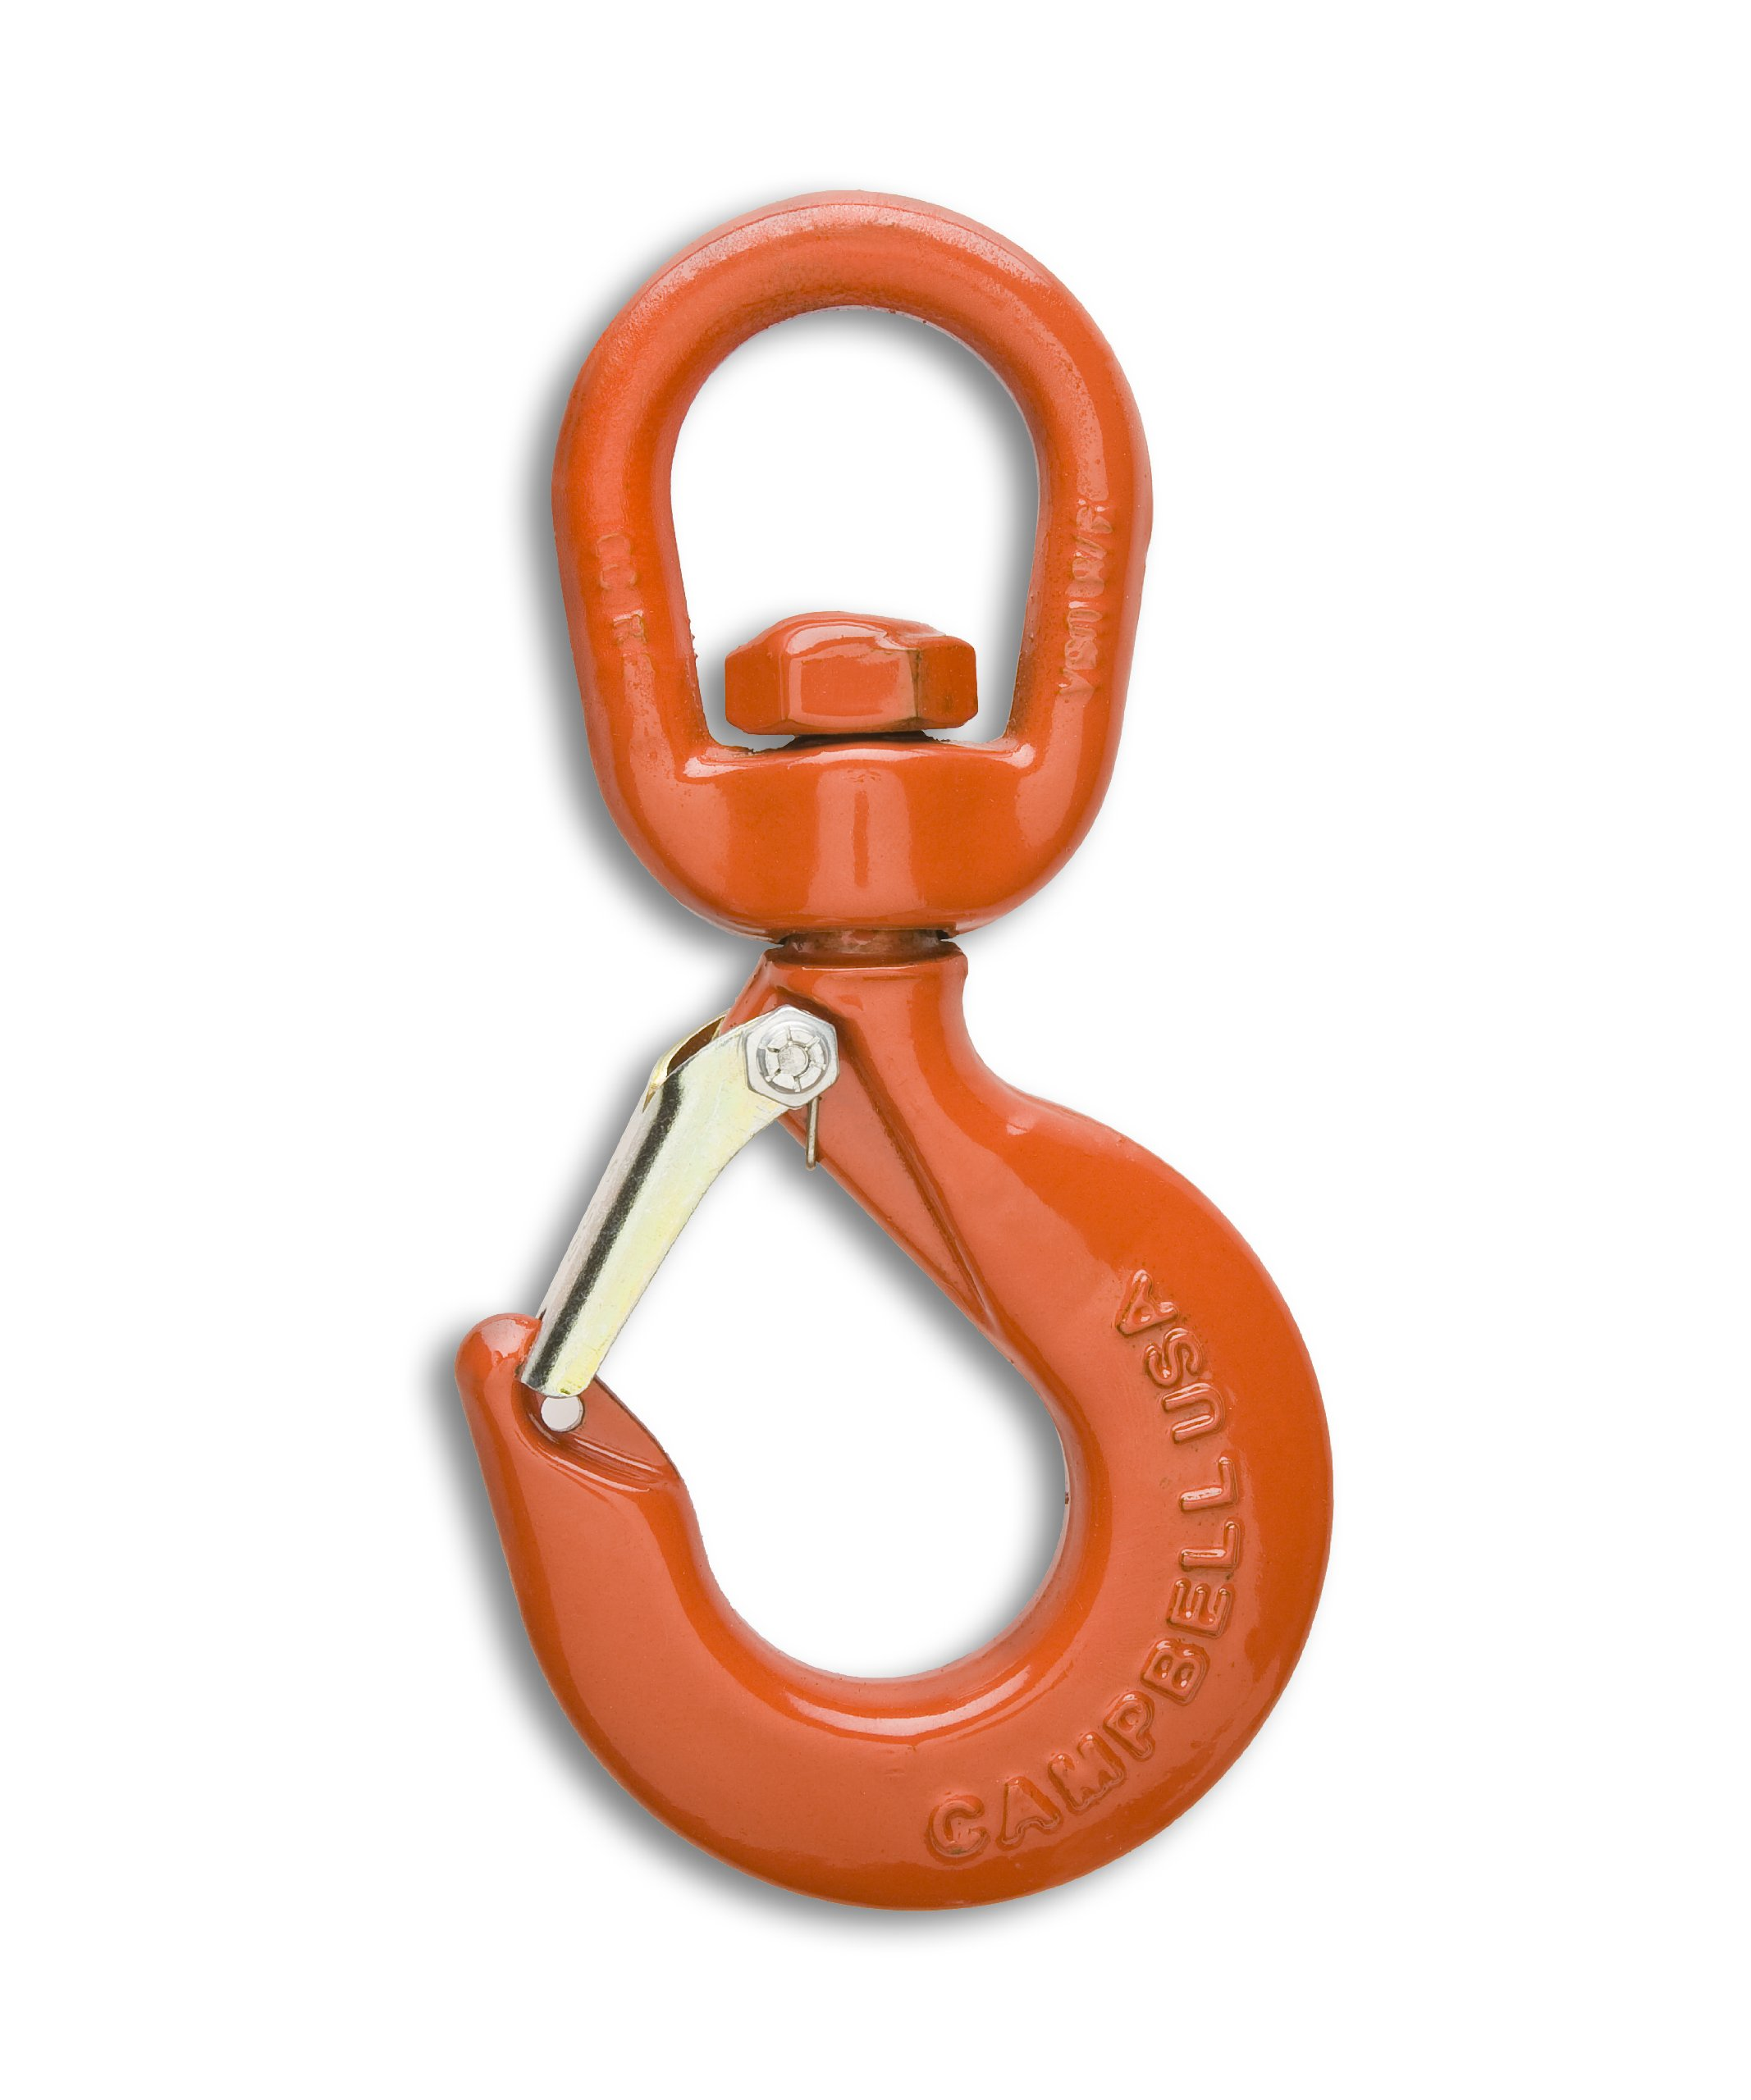 Campbell 3952515IL Drop-Forged Alloy Steel Swivel Hoist Hook with Integrated Latch, Painted Orange, 5 Trade, 3 ton Working Load Limit